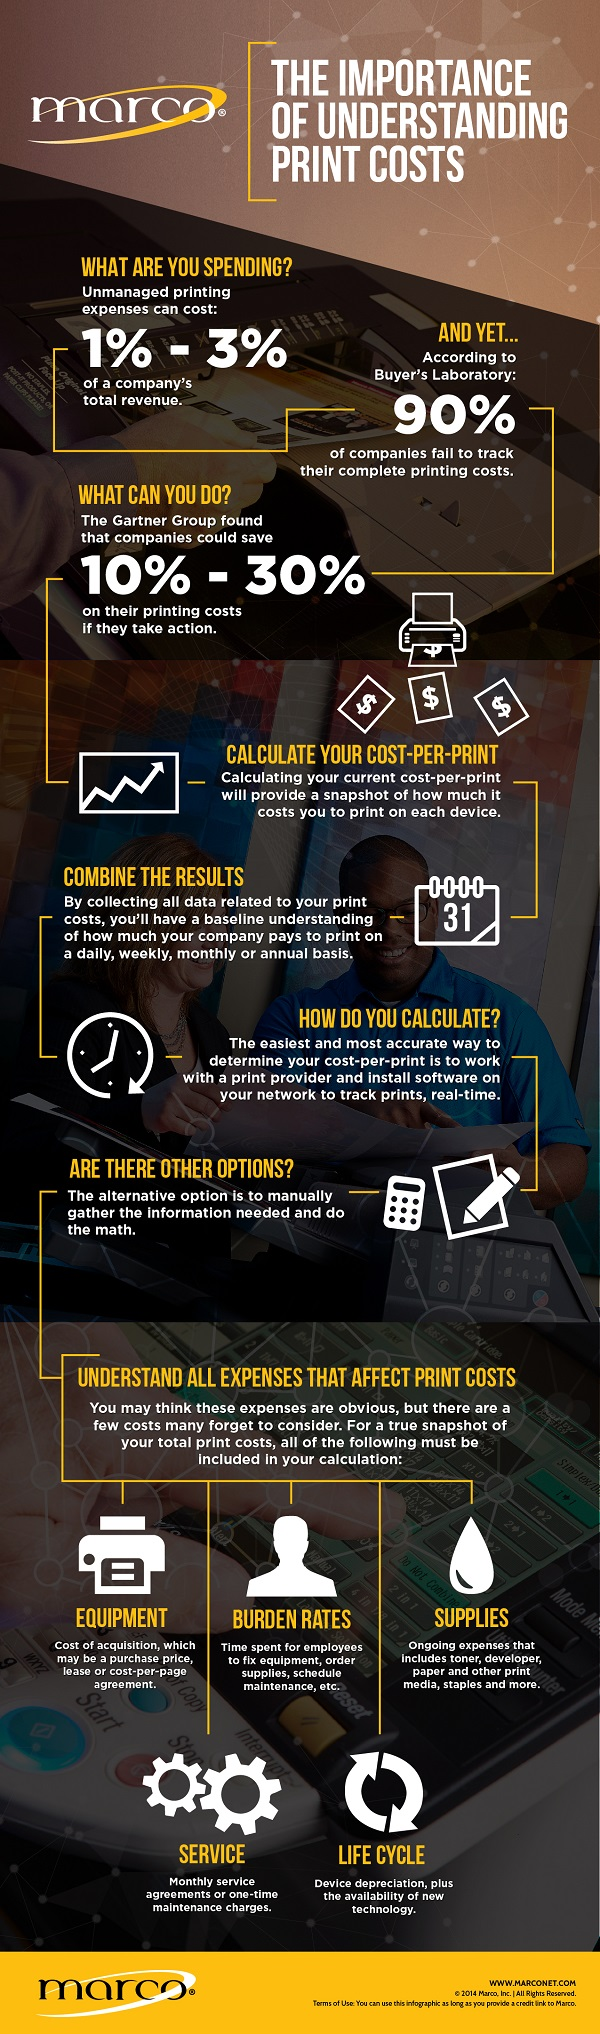 How To Calculate Cost Per Print And Lower Overall Print Costs